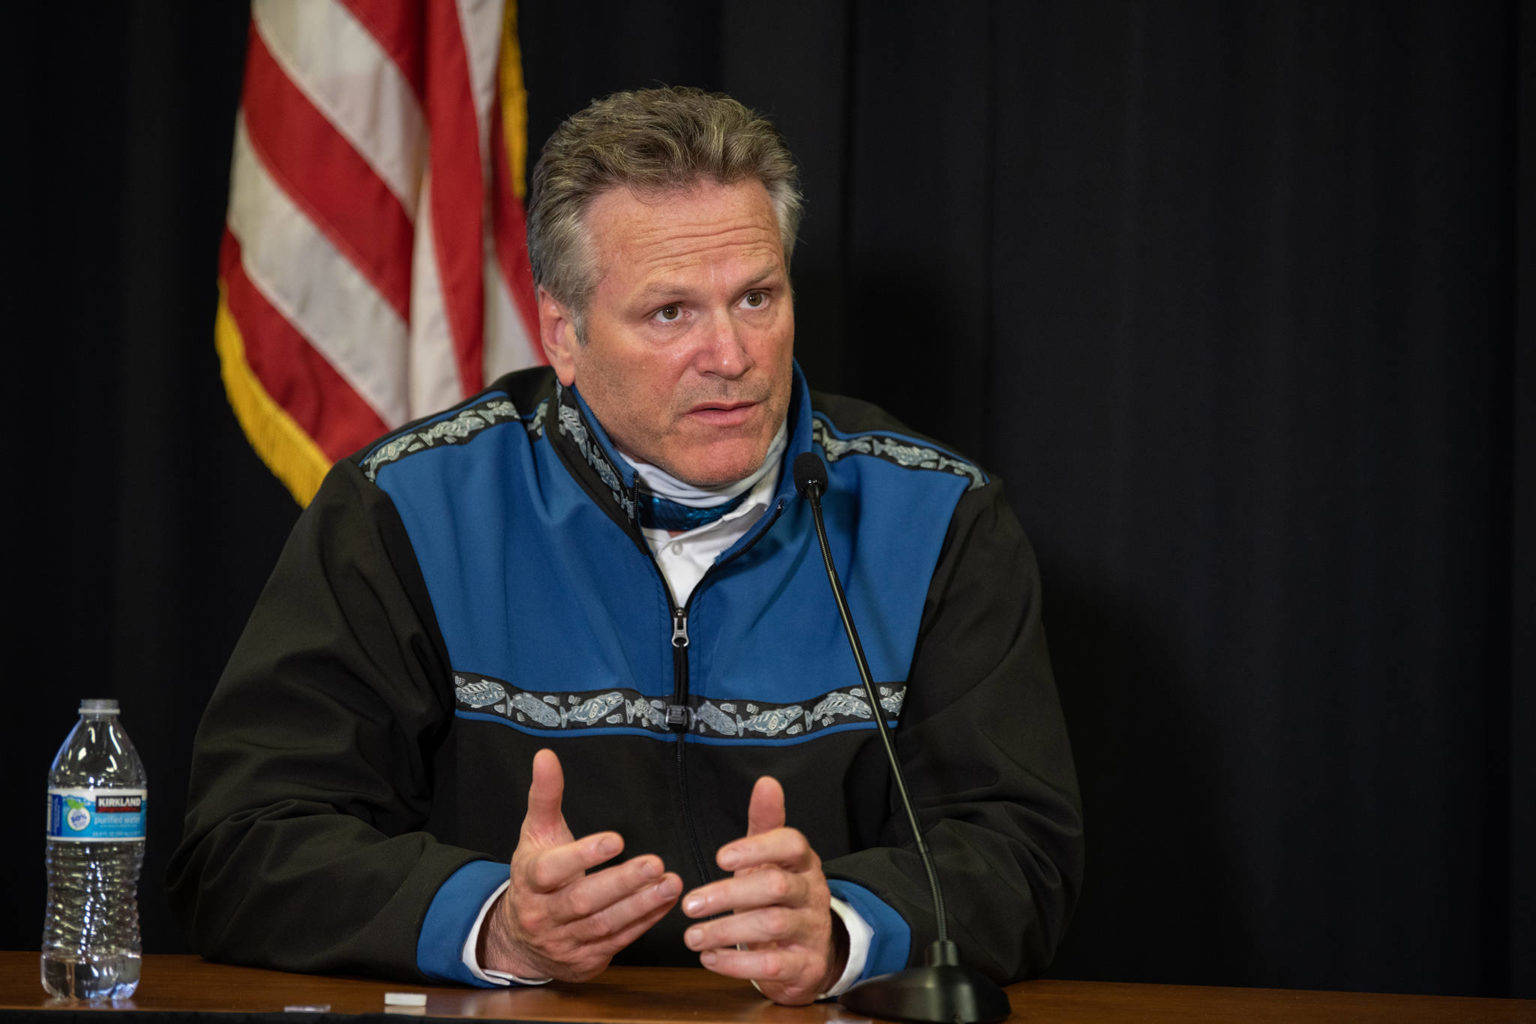 Gov. Mike Dunleavy speaks during a virtual town hall meeting on Sept. 15. (Courtesy Photo / Office of Gov. Mike Dunleavy)